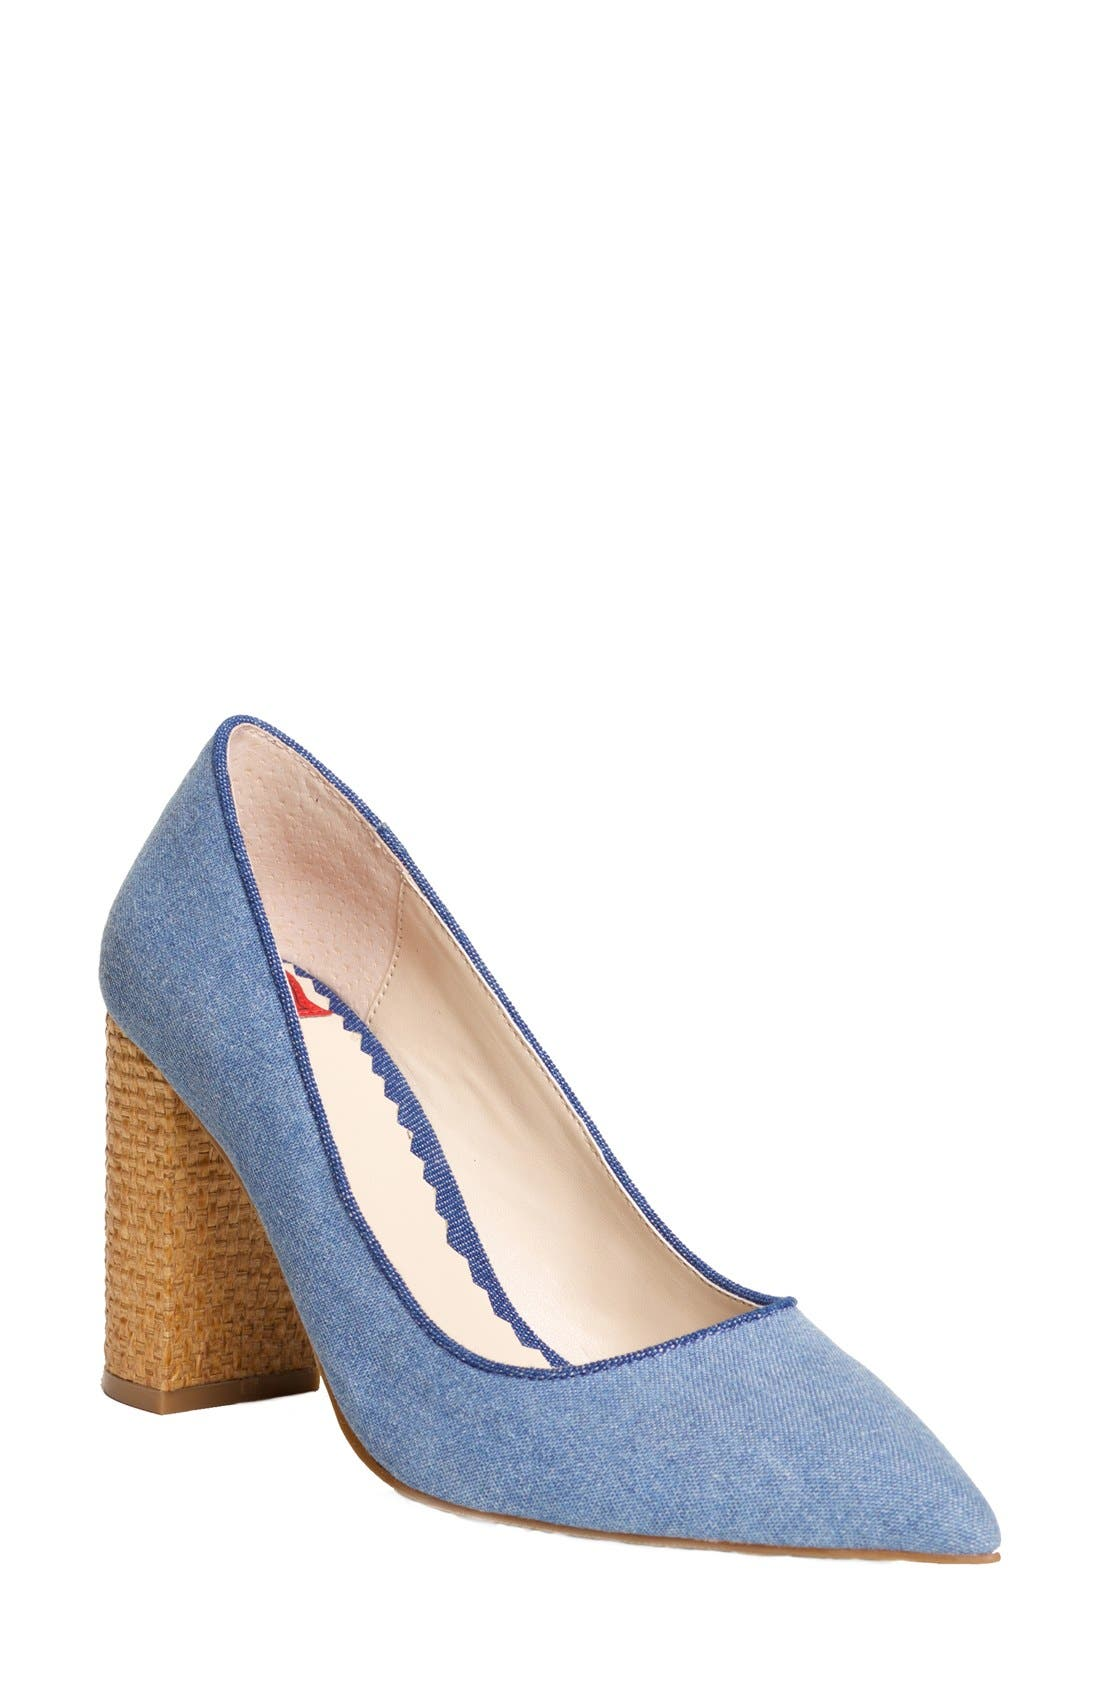 'OMG' Pointy Toe Pump,                         Main,                         color, Light Blue